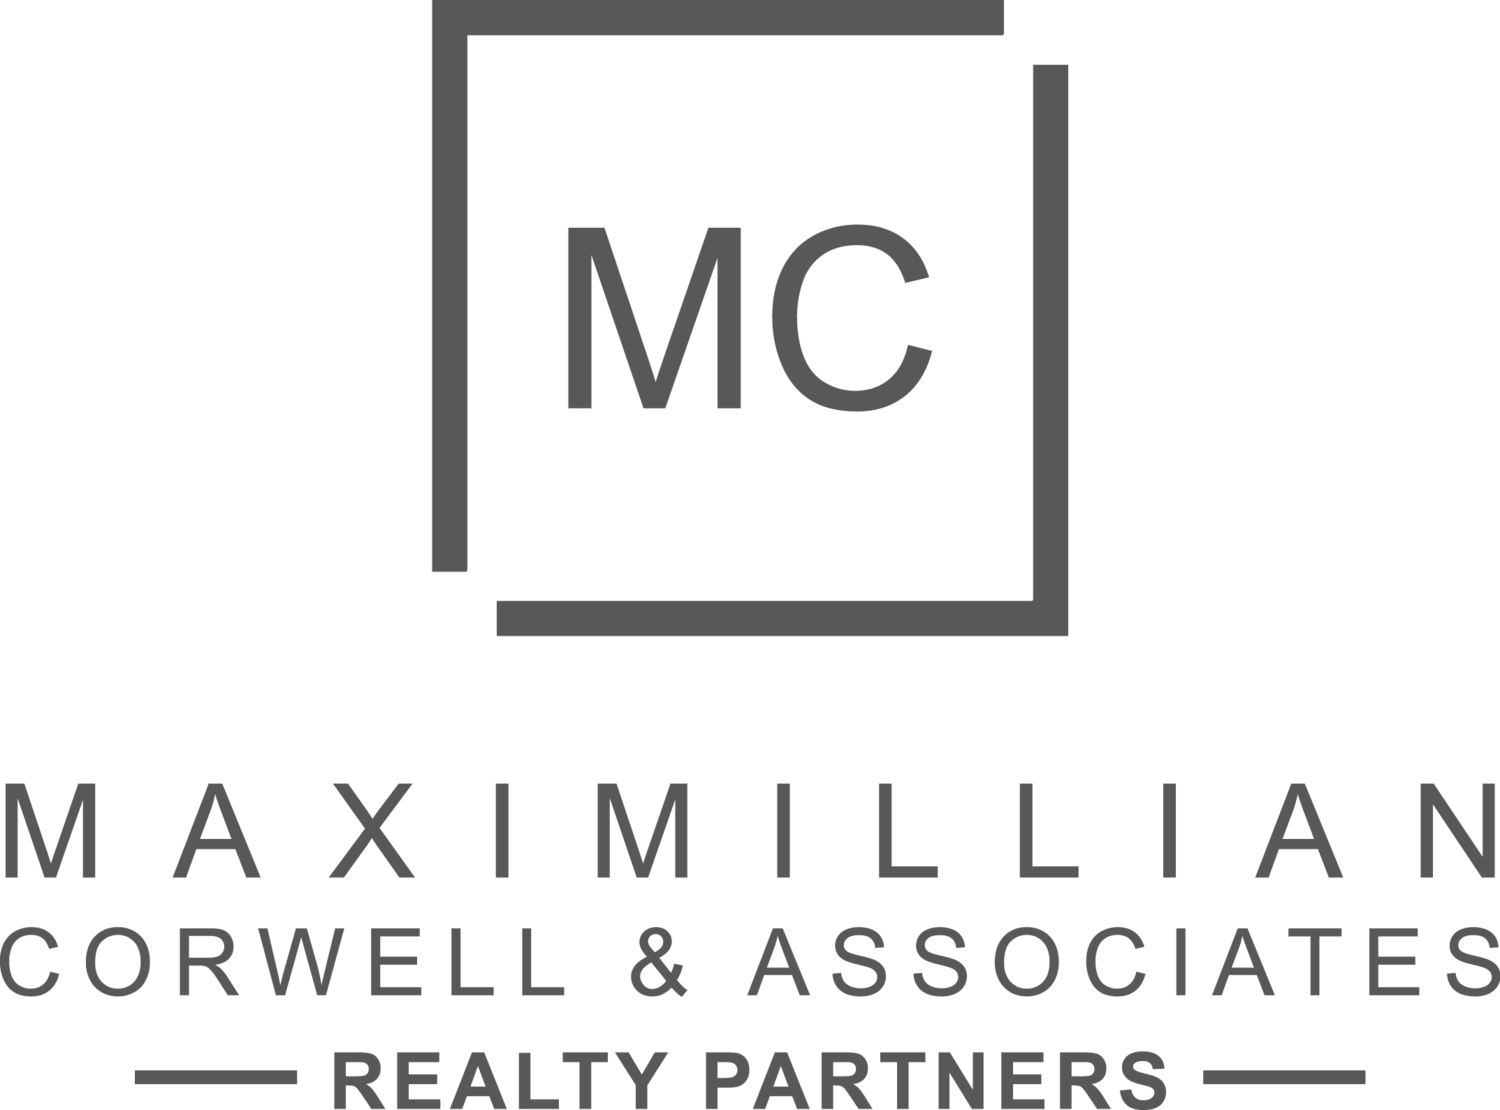 Maximillian Corwell & Associates